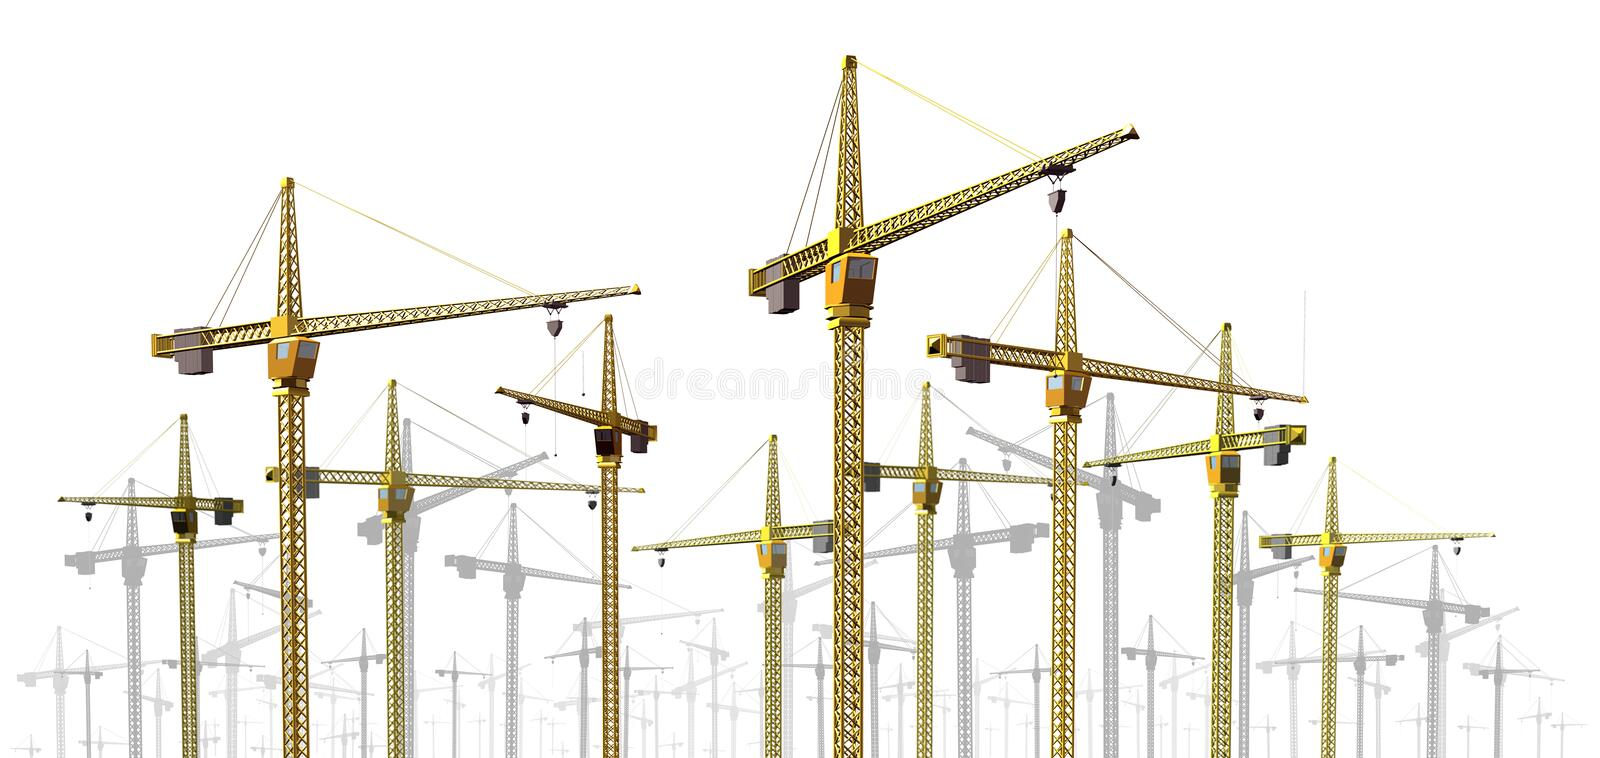 Cranes at Construction Site. Border design element as a development and economic growth symbol with a group of commercial industrial building equipment on a royalty free illustration